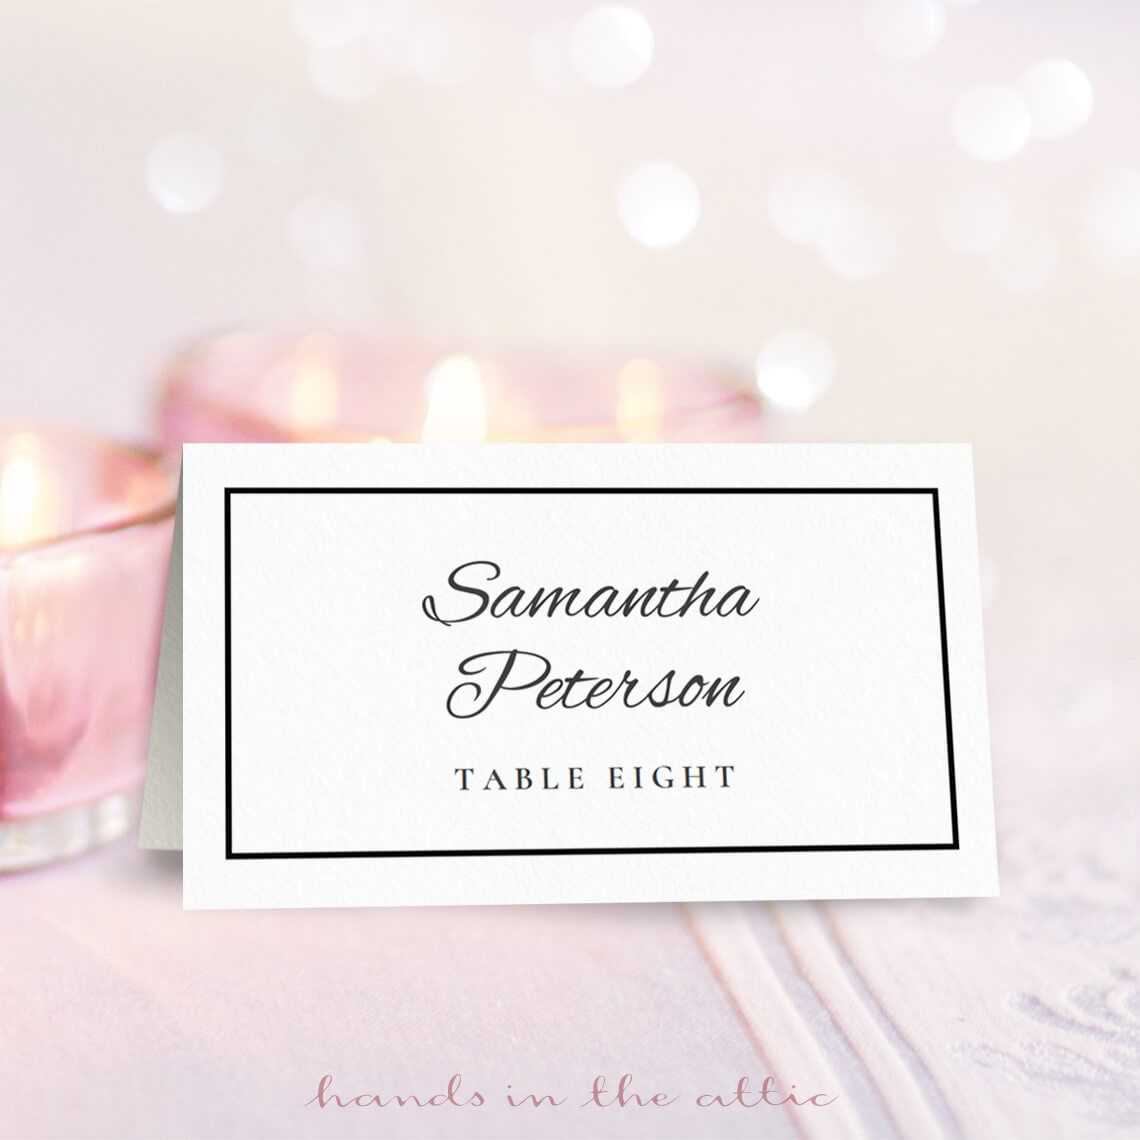 001 Free Place Card Template Excellent Ideas Tent Templates Pertaining To Free Place Card Templates 6 Per Page